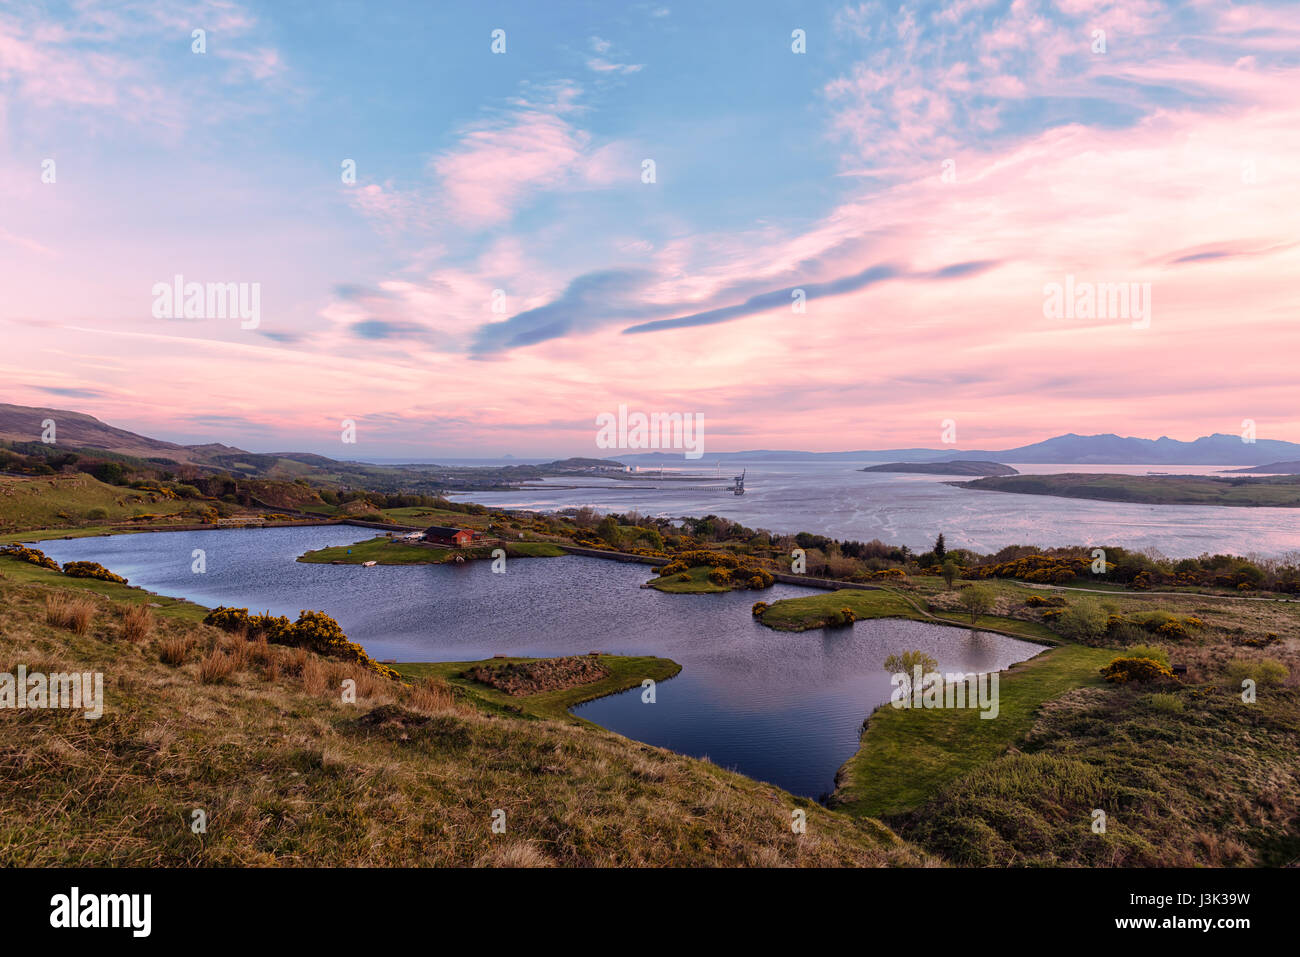 Largs Reservoir clyde valley down to Hunterston and Arran in the misty distance. - Stock Image